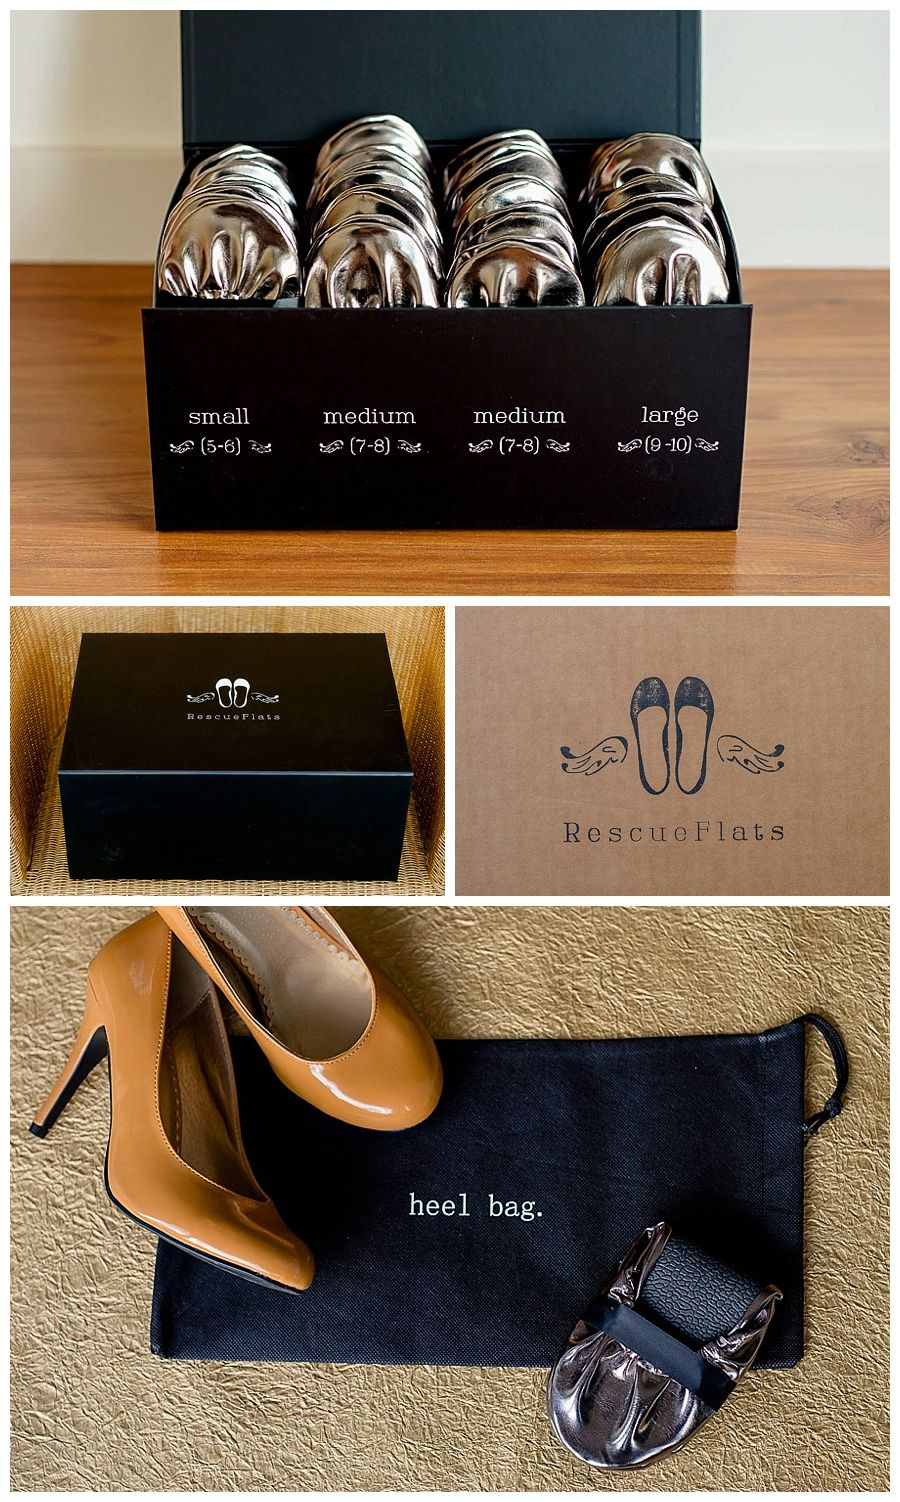 2c026da7994 Rescue Flats - Ballet Flat wedding favours for guests to dance in - Canoe  Wedding